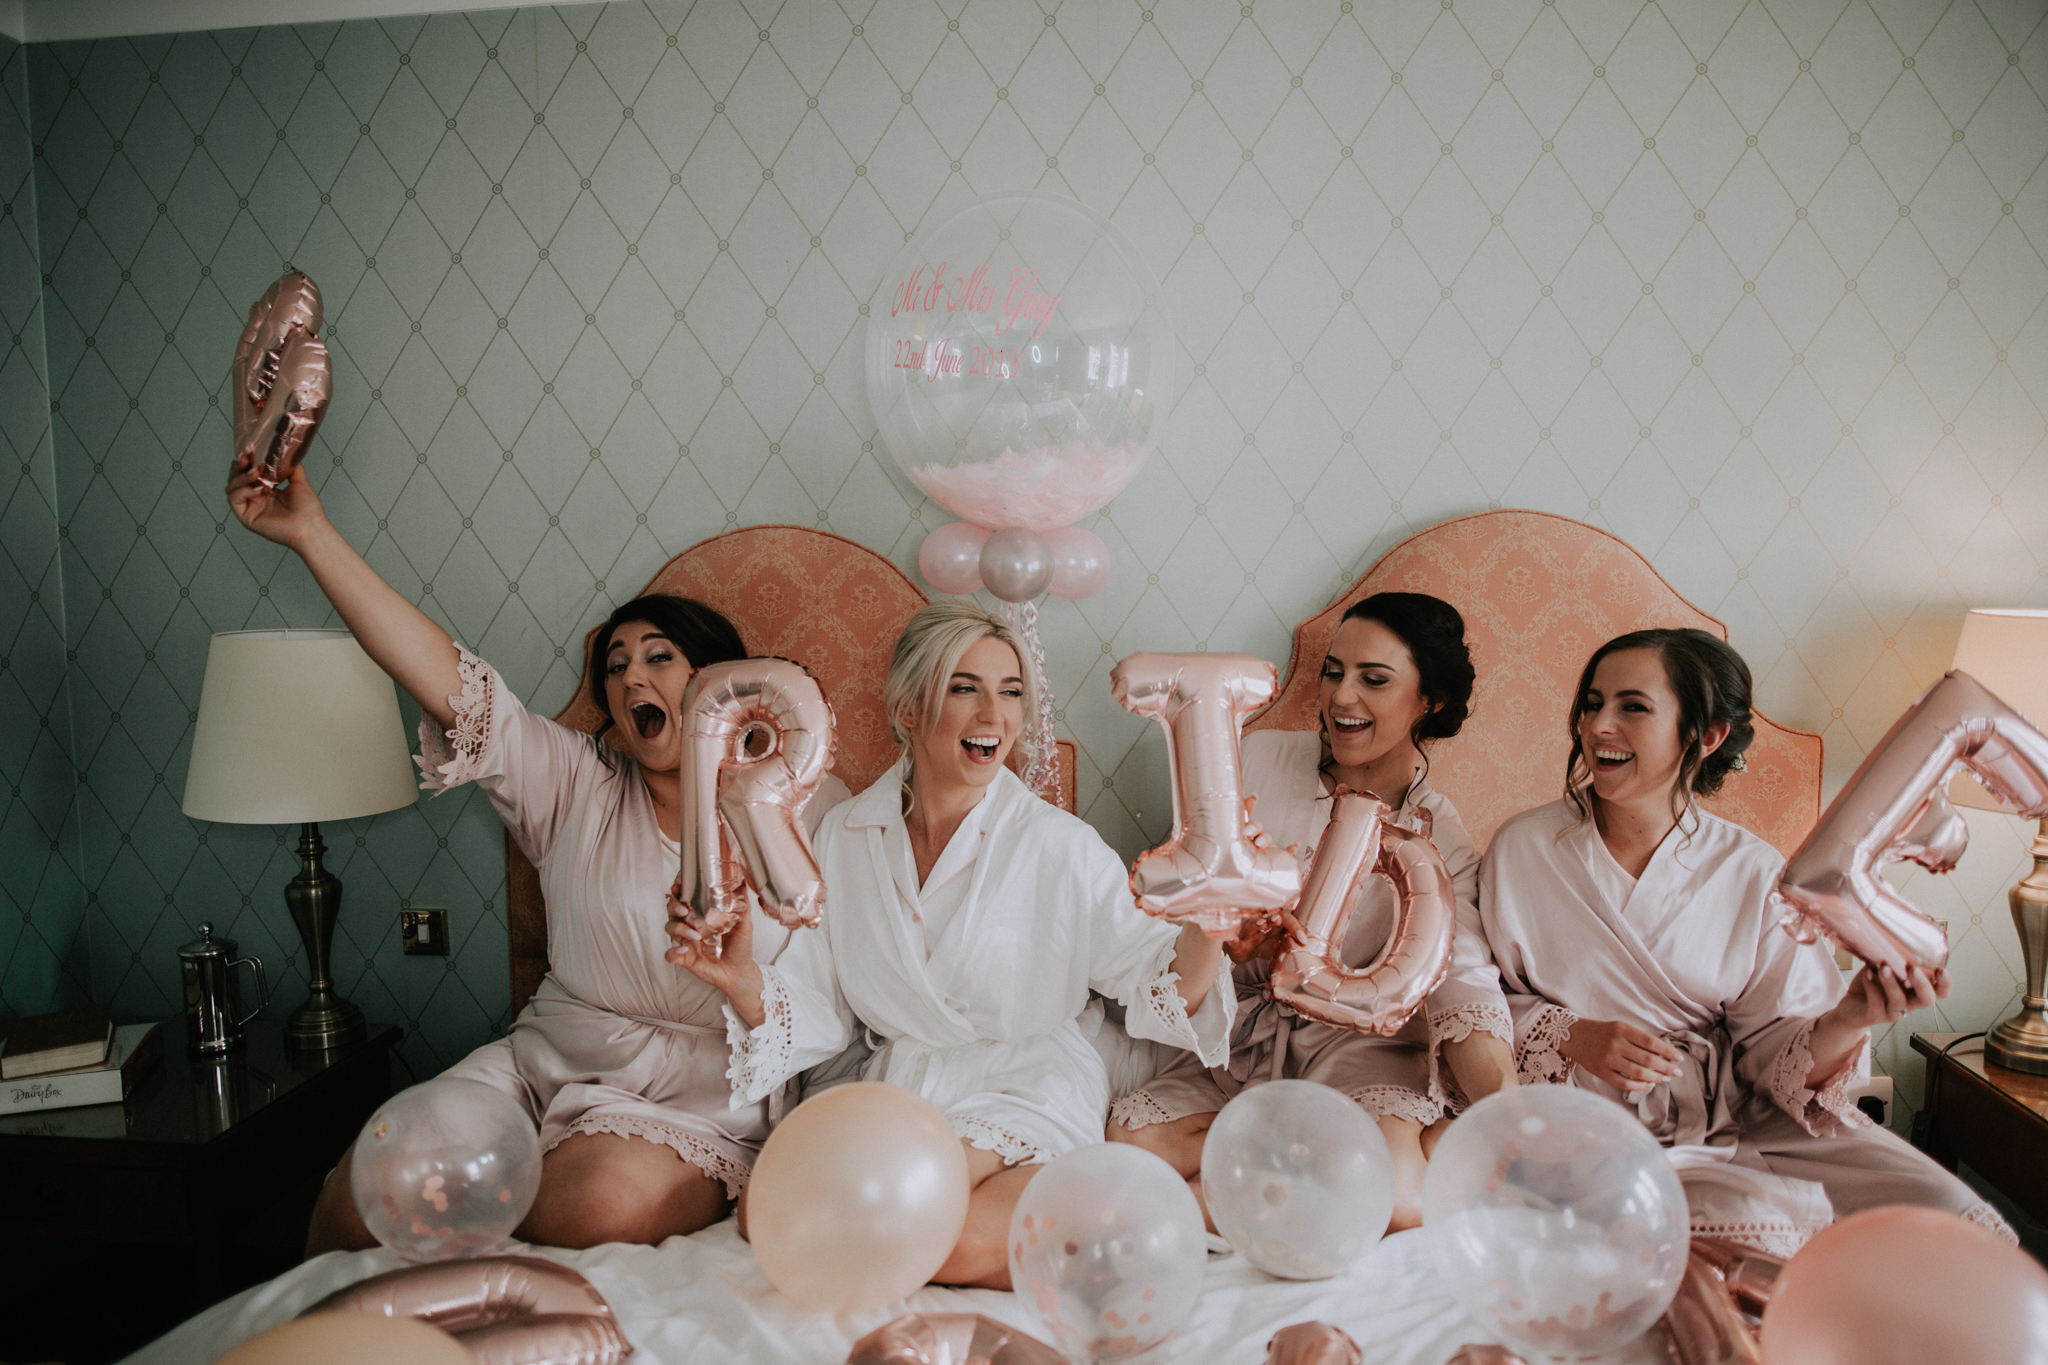 The bridal party is having a fun time at the bridal preparation